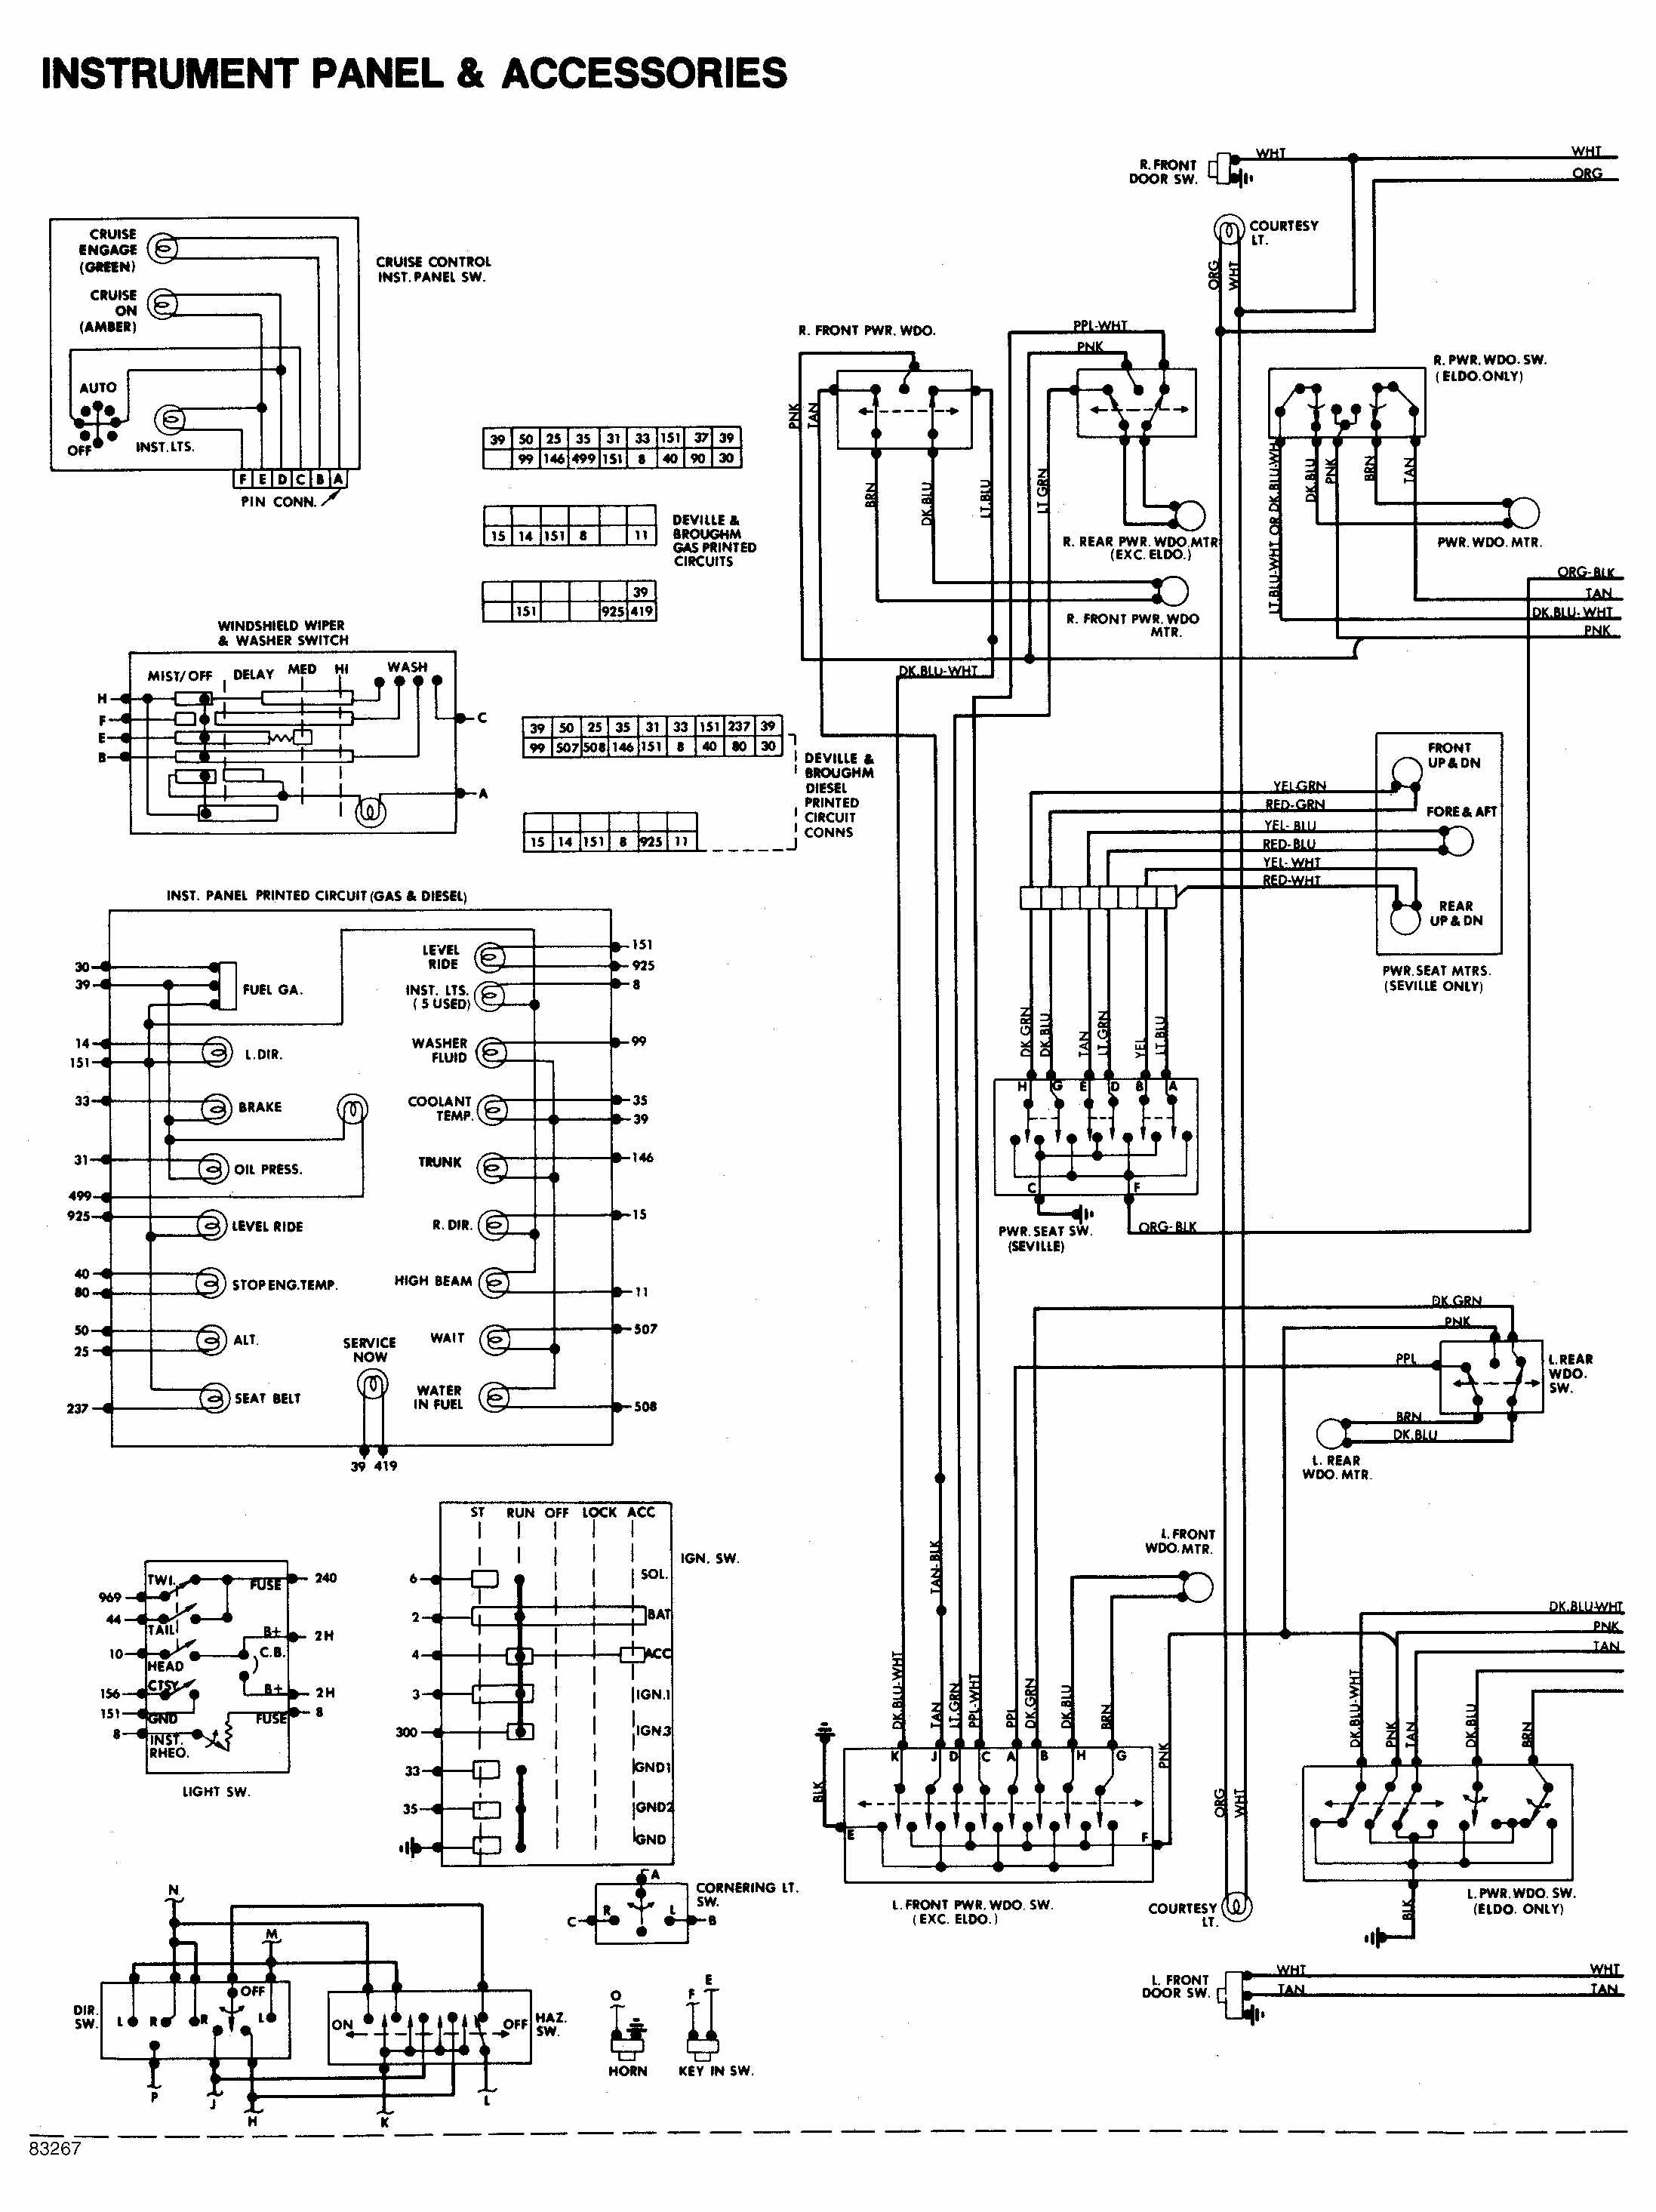 1969 Cadillac Fuse Box Diagram - WE Wiring Diagram on grand am wiring diagram, wrangler wiring diagram, rav4 wiring diagram, pt cruiser wiring diagram, ssr wiring diagram, firebird wiring diagram, 2007 yukon wiring diagram, lumina wiring diagram, 1937 cadillac wiring diagram, cutlass wiring diagram, xterra wiring diagram, 4runner wiring diagram, h3 wiring diagram, allante wiring diagram, hhr wiring diagram, es 350 wiring diagram, impreza wiring diagram, civic wiring diagram, defender 90 wiring diagram, land cruiser wiring diagram,